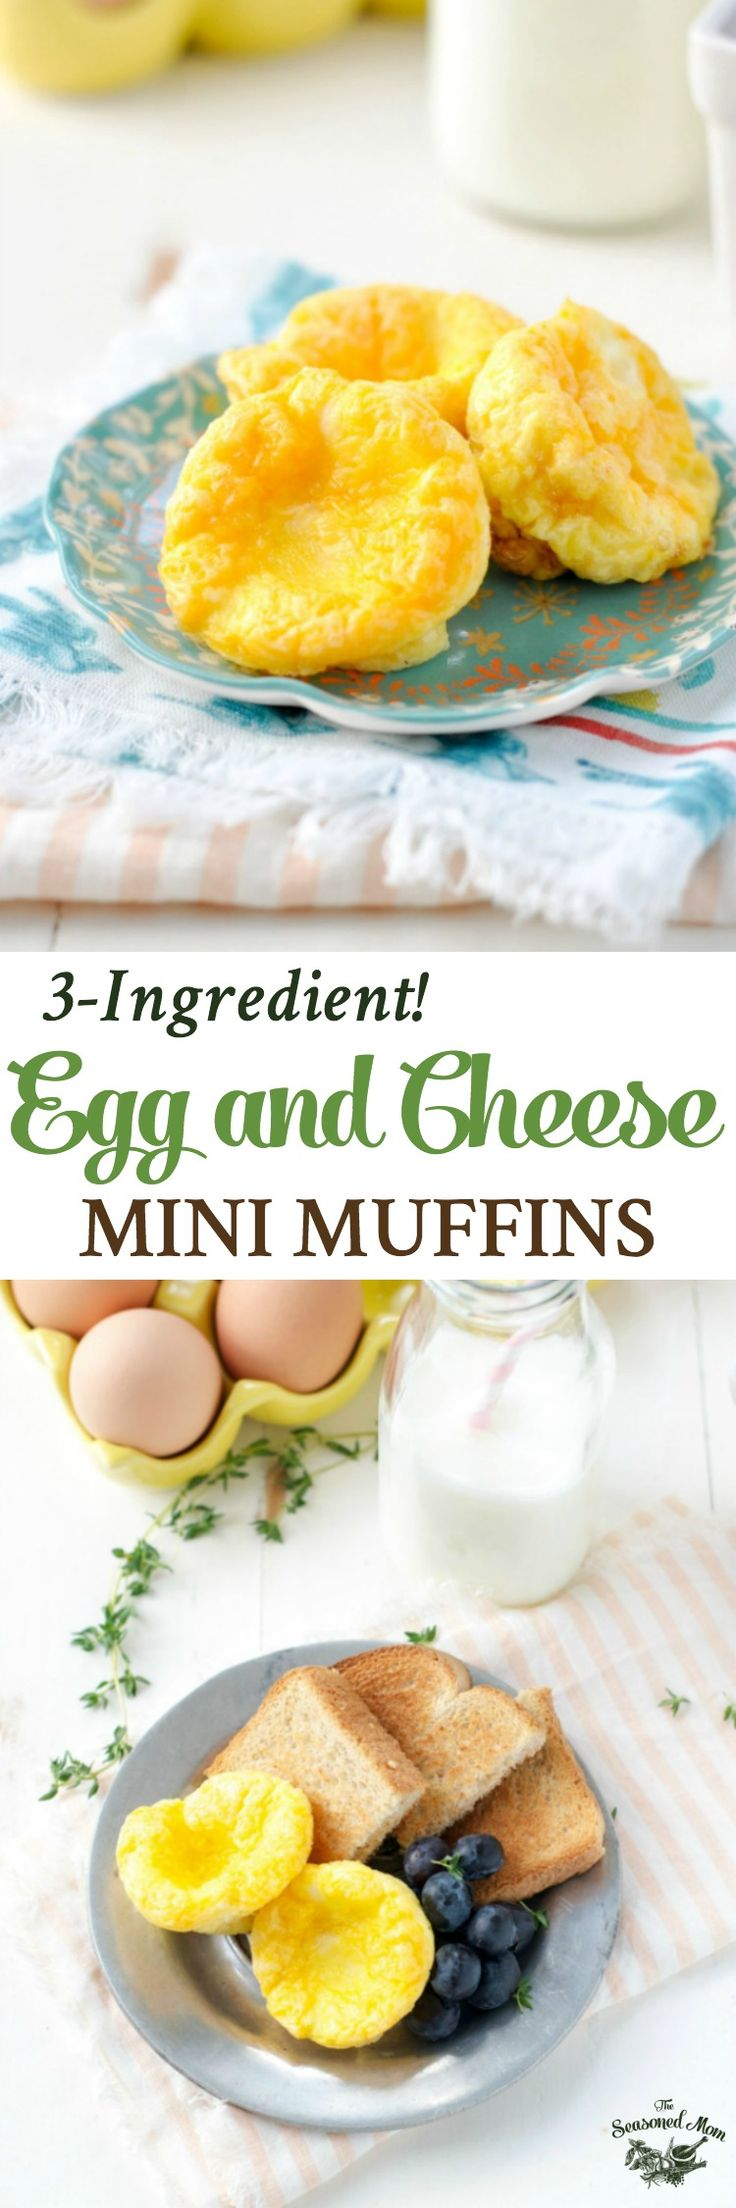 These 3-Ingredient Egg and Cheese Mini Muffins are a great make-ahead, healthy toddler breakfast or snack. Keep a stash in your refrigerator or freezer and reheat as necessary -- they're like portable, mess-free scrambled egg cups!